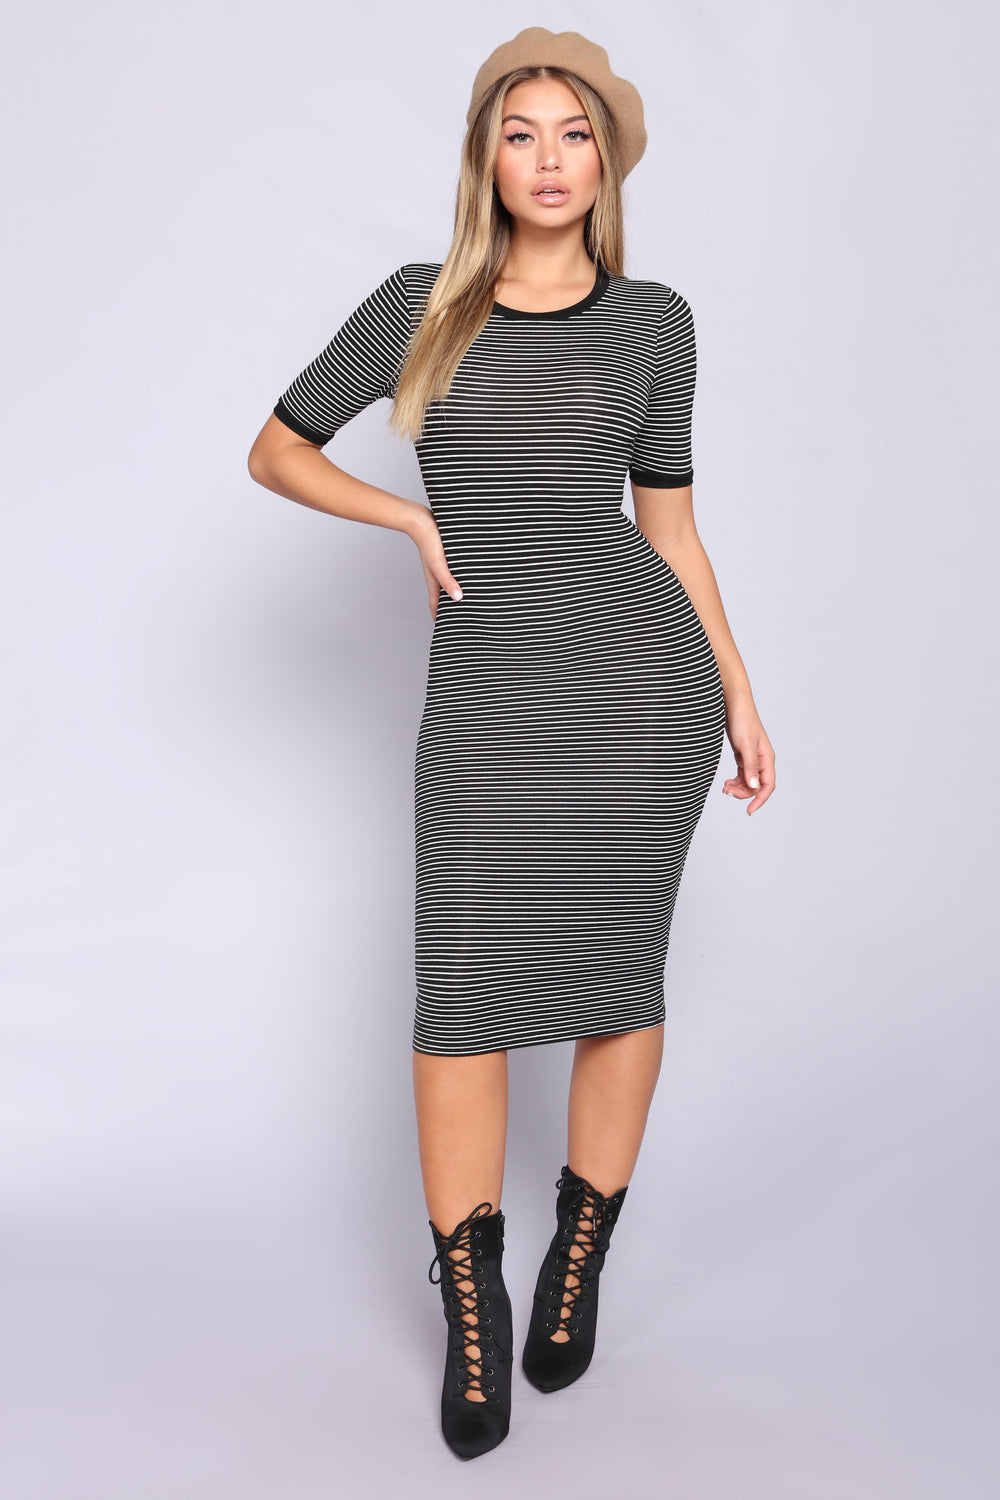 Just The Girl Striped Dress - Black/White